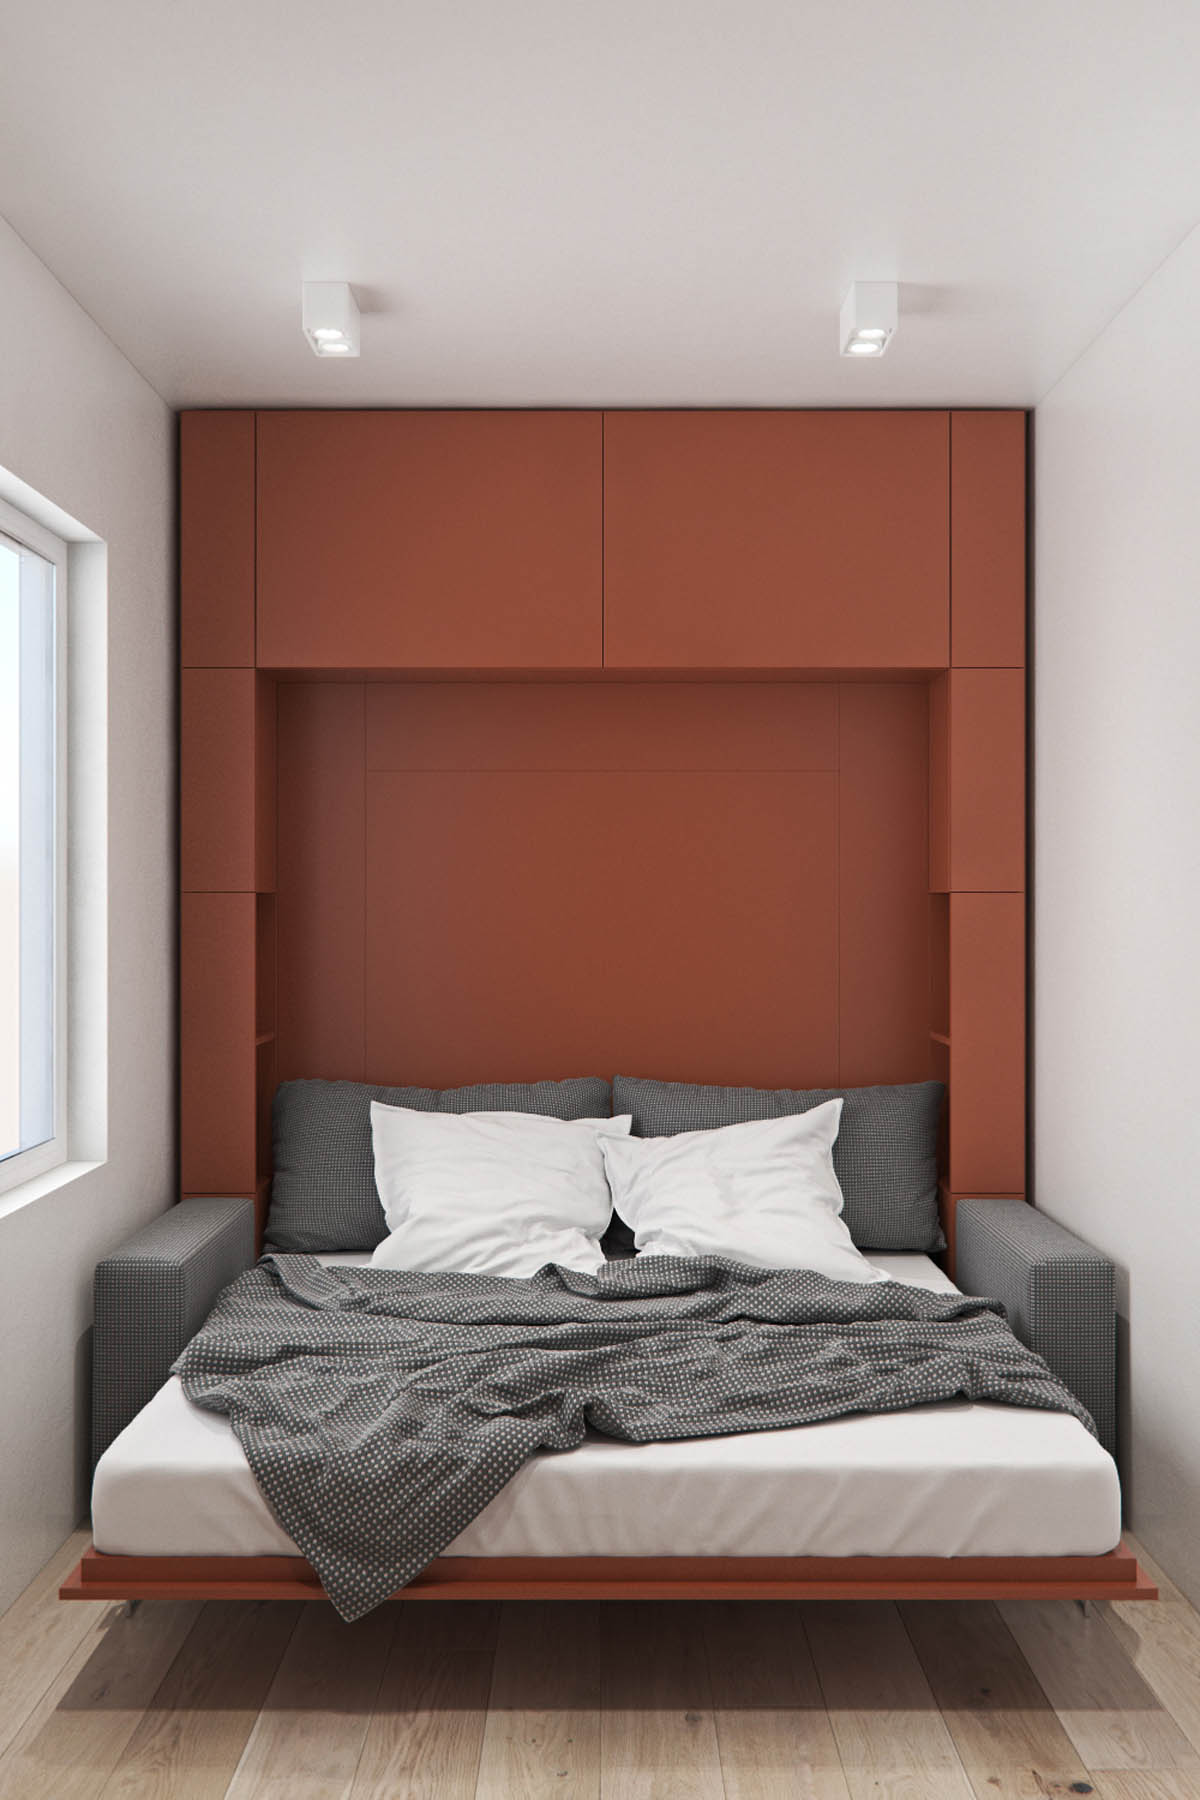 HOME DESIGNING Minimalist Style Design Of A 3 Bed 2 Bath